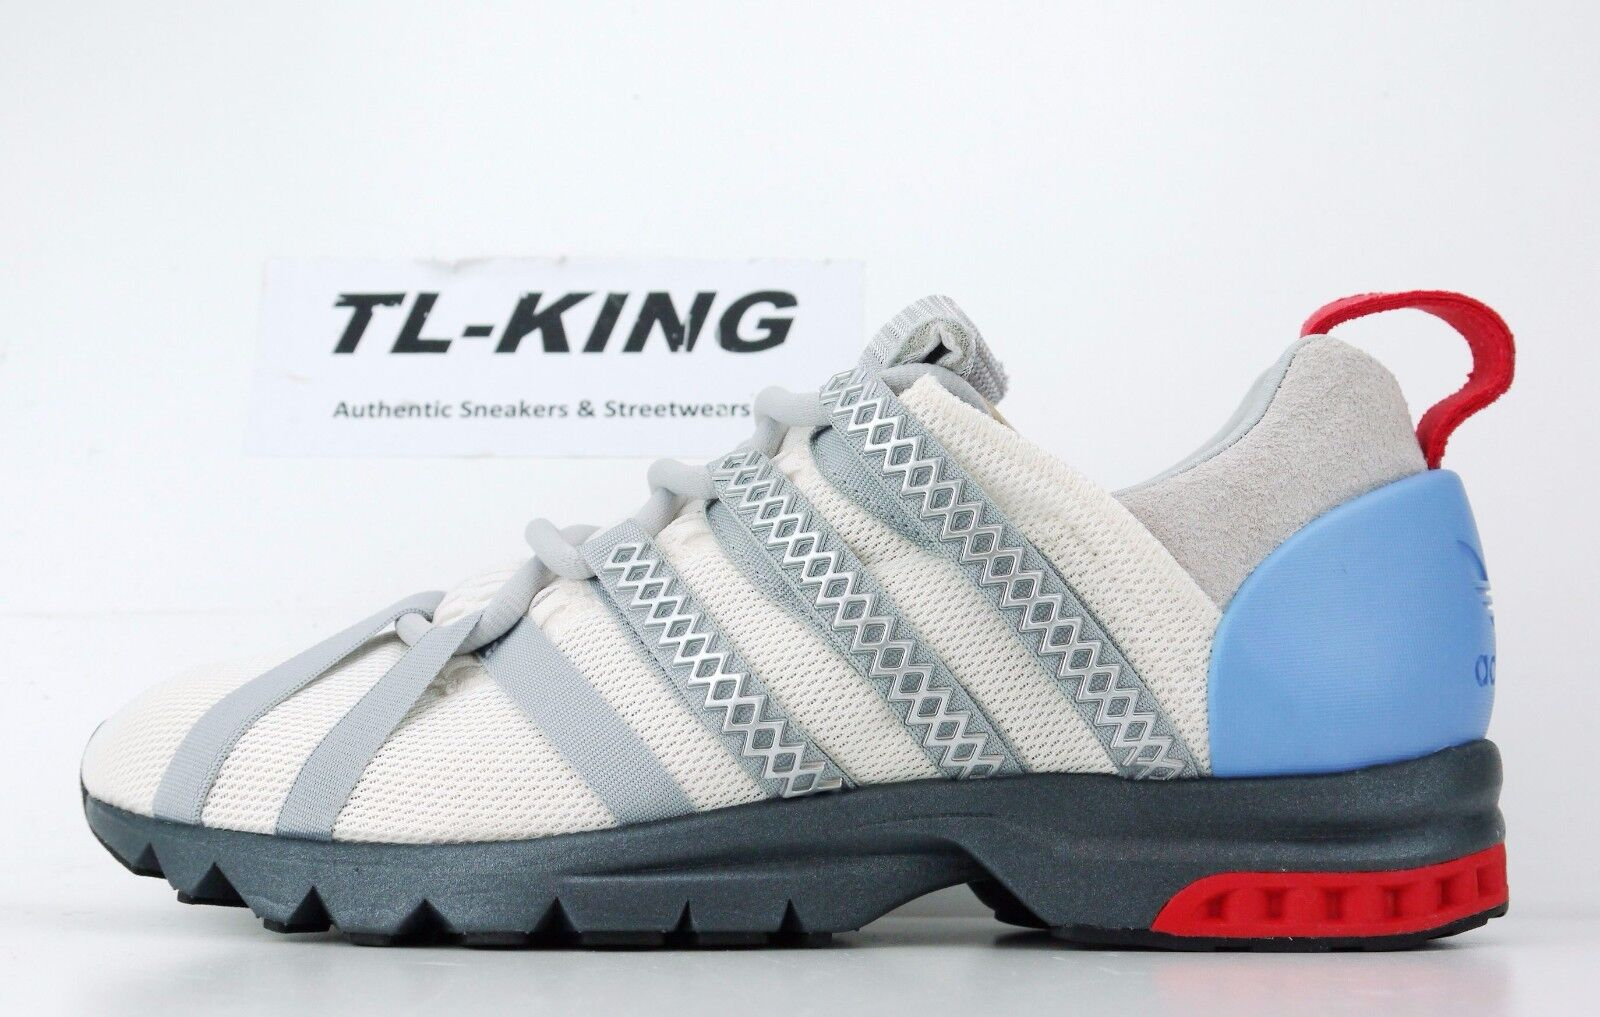 Adidas Consortium Adistar Comp A/D ADV Parallel Dimension BY9836 Msrp Price reduction Special limited time